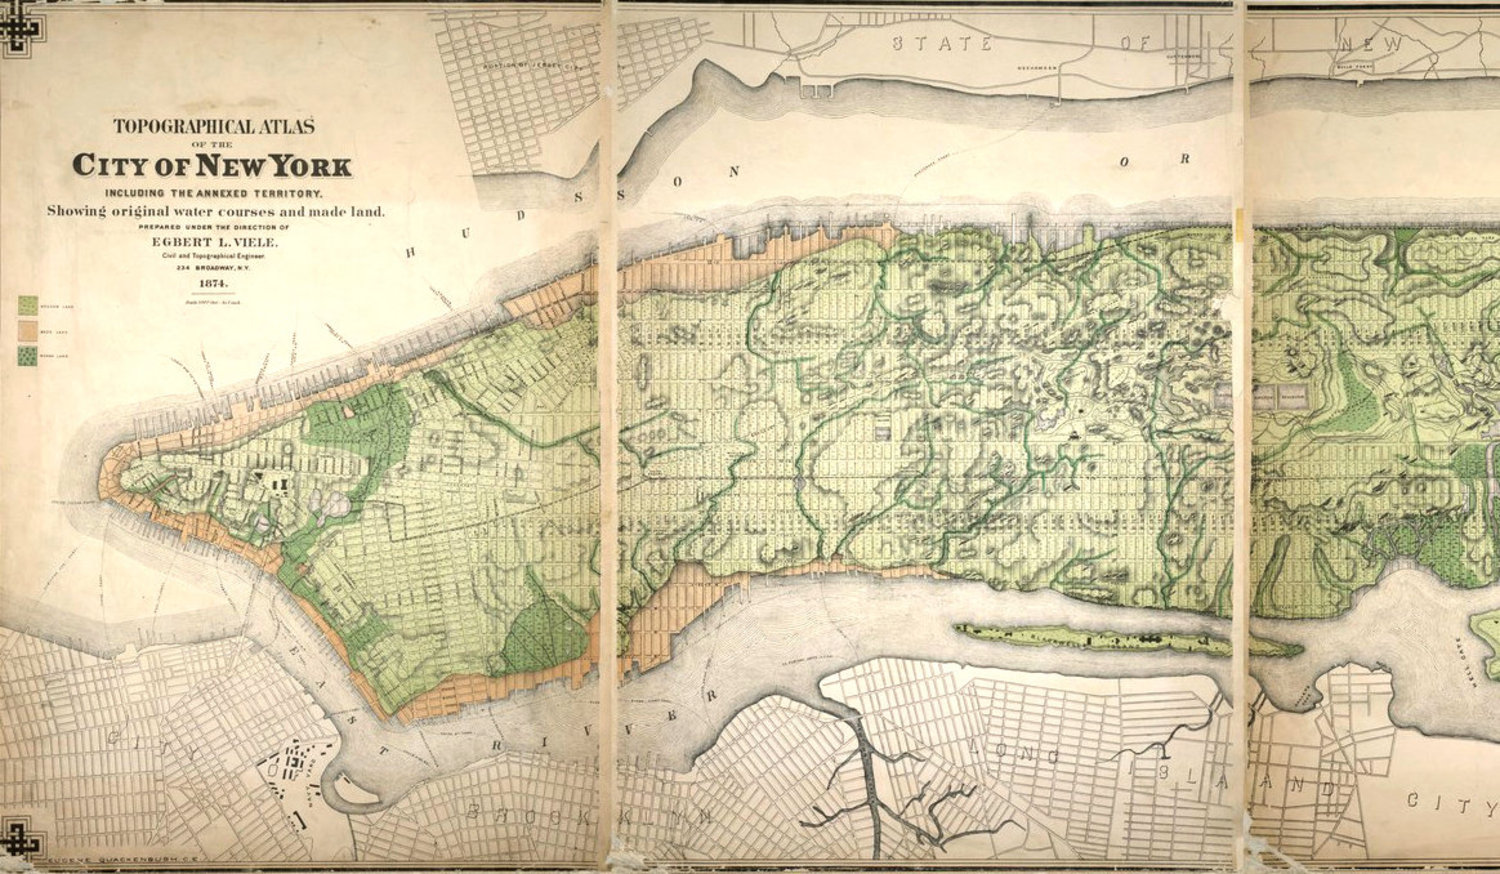 topographical map of new york city Vintage Map From 1874 Showing Manhattan S Original Natural Water Courses Viewing Nyc